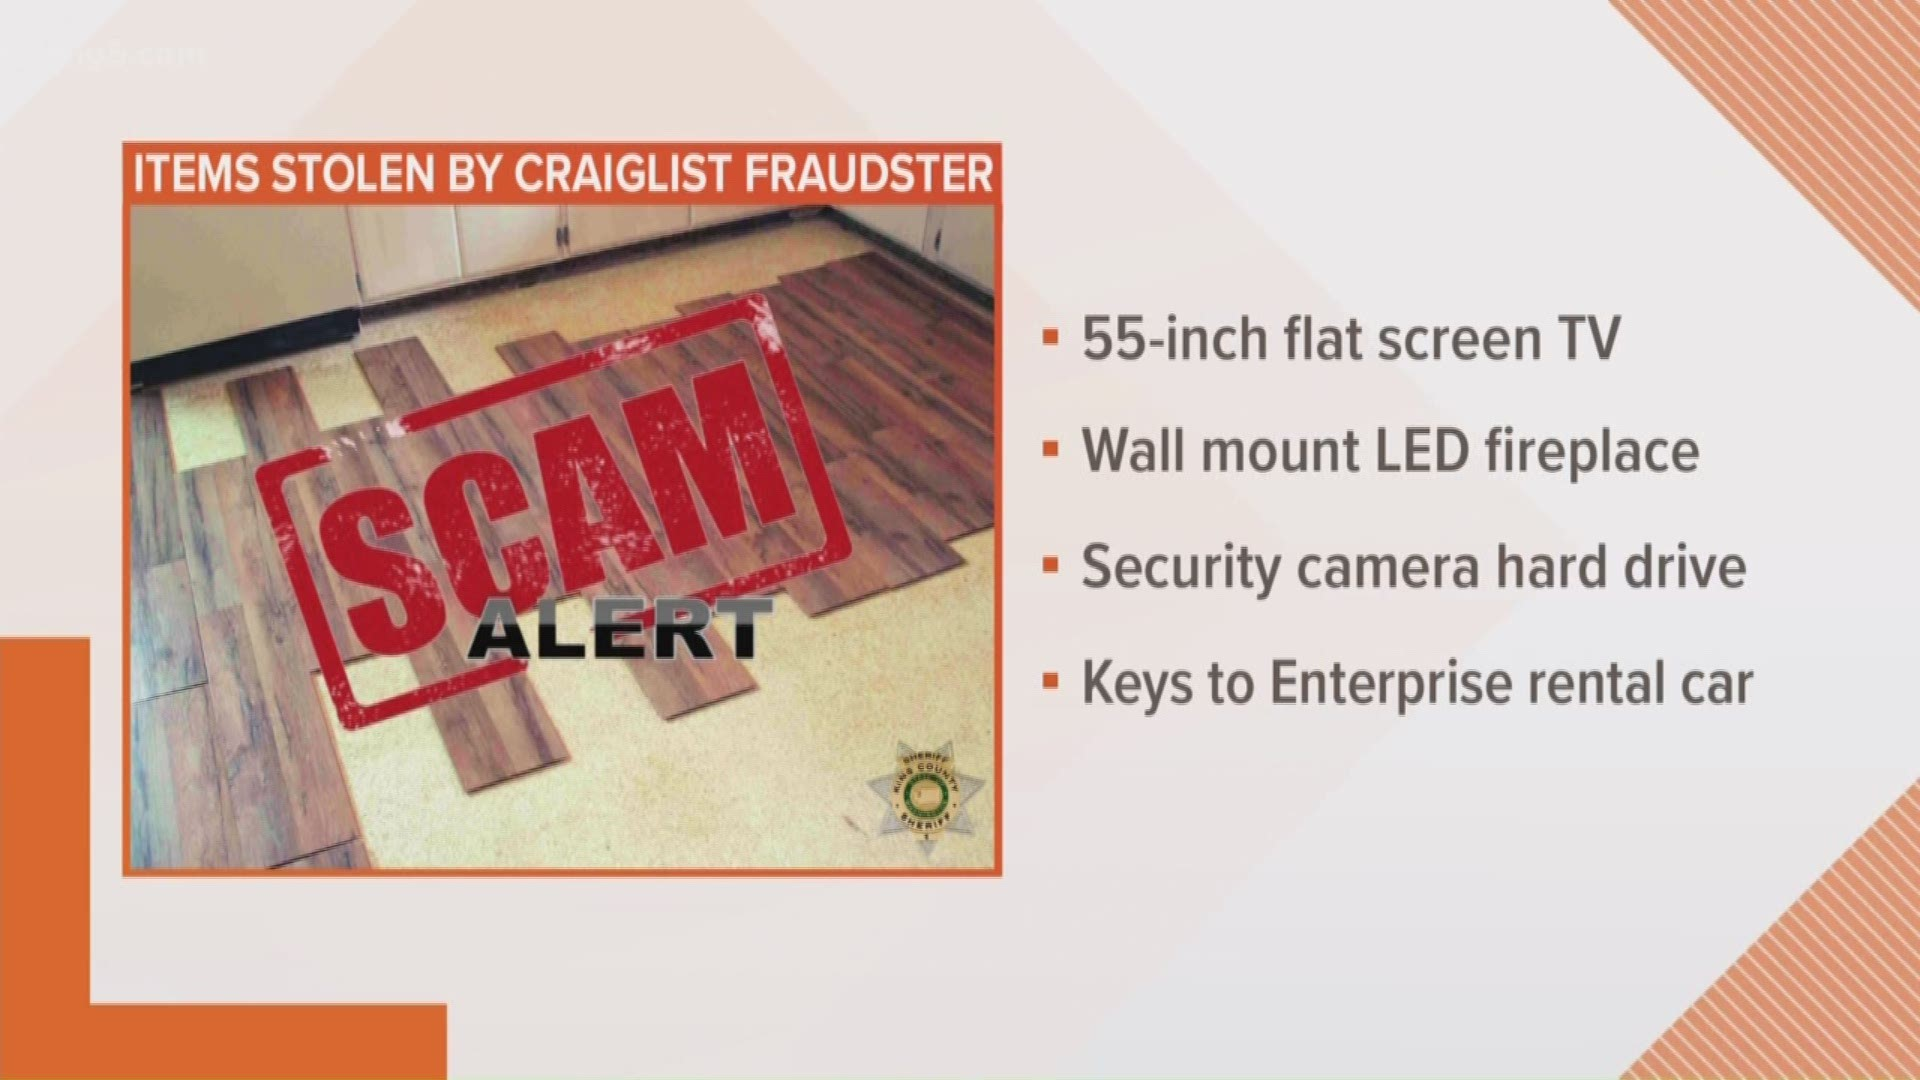 King County Sheriff S Office Warns Of Craigslist Con Artist Posing As Handyman King5 Com The keys are an archipelago of about 1700 islands extending south and southwest of the florida mainland. king county sheriff s office warns of craigslist fraudster